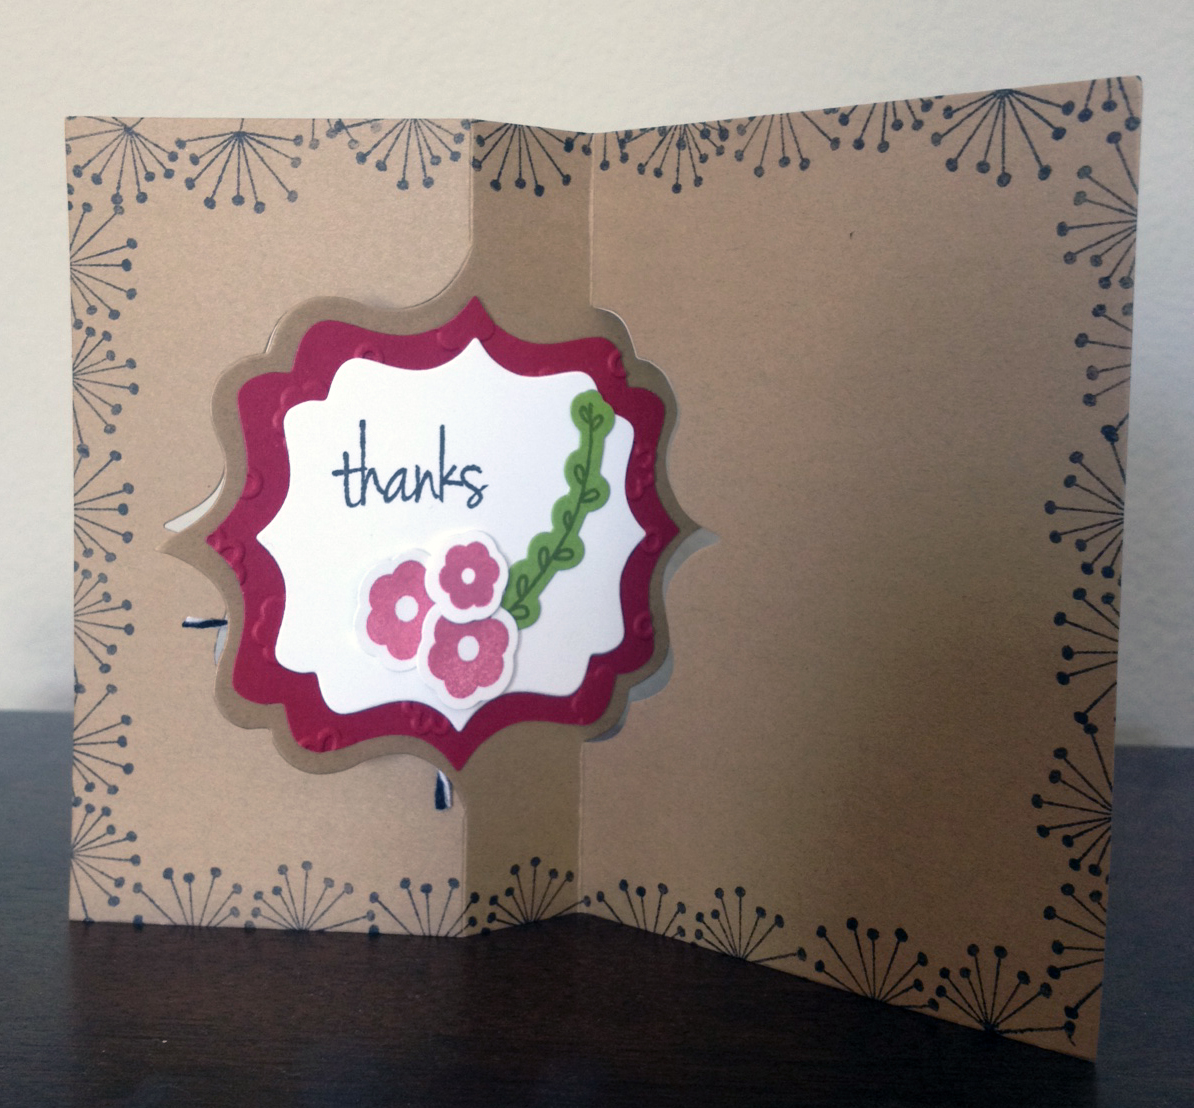 Card Making Ideas Sizzix Part - 41: The Card Includes Two Of My New Stamp And Framelits Sets That Will Be  Available This Fall: